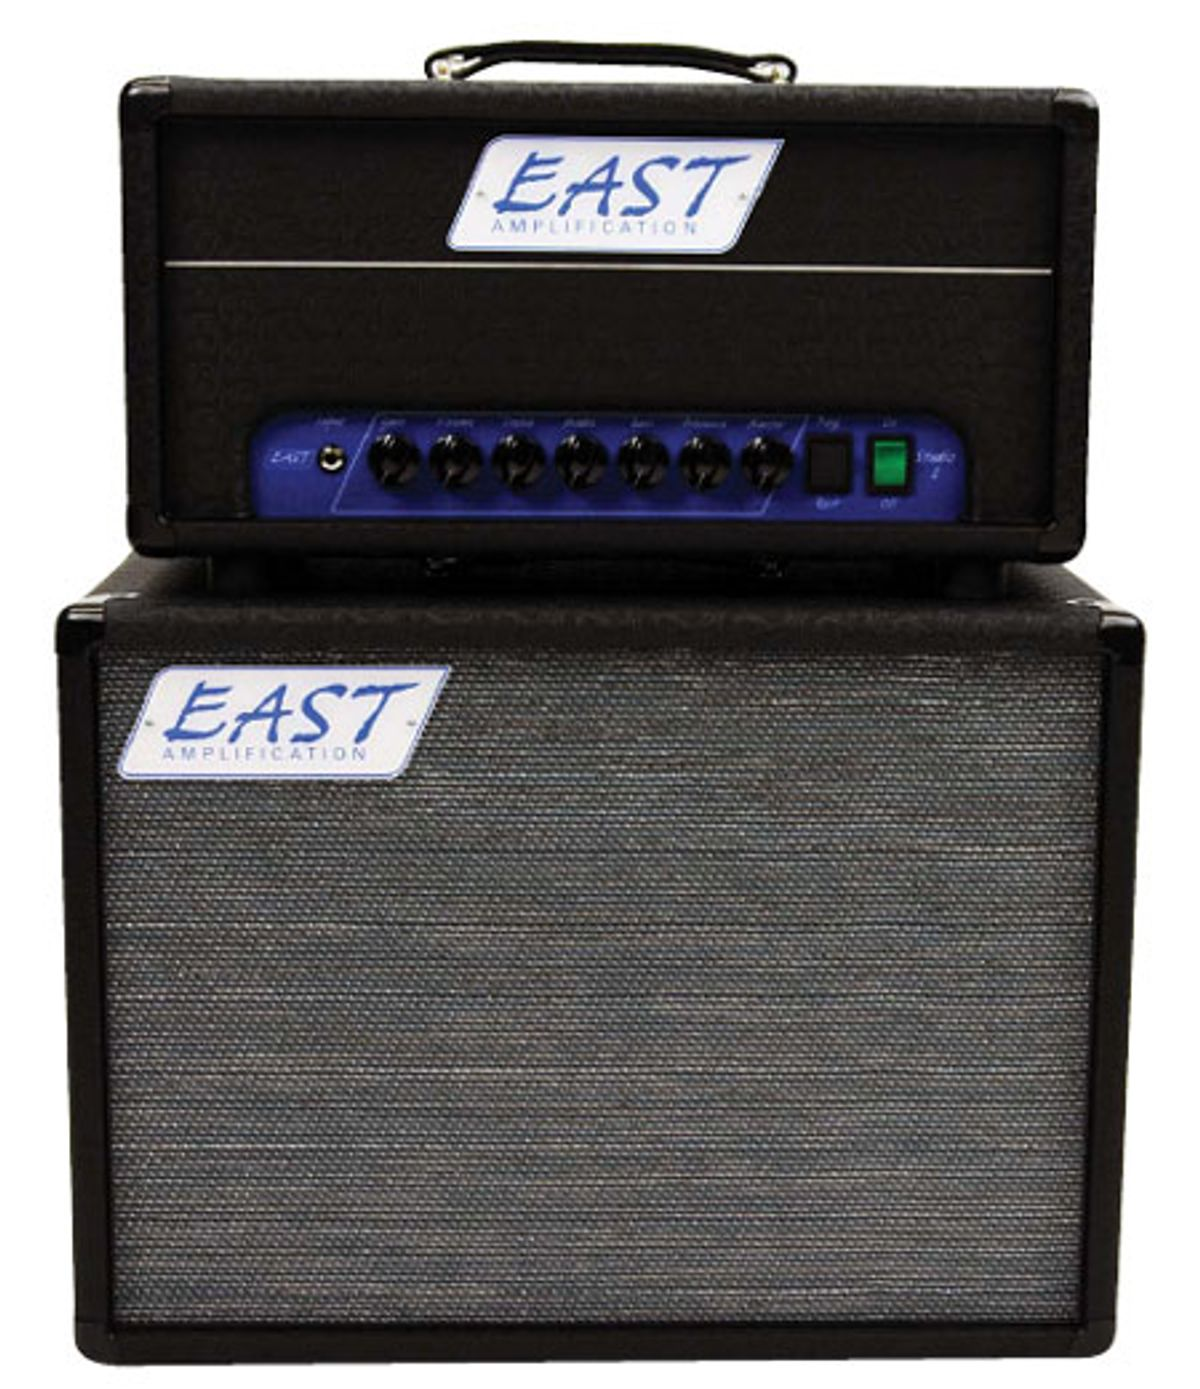 East Amplification Studio2 Amp and 1x10 Cab Review